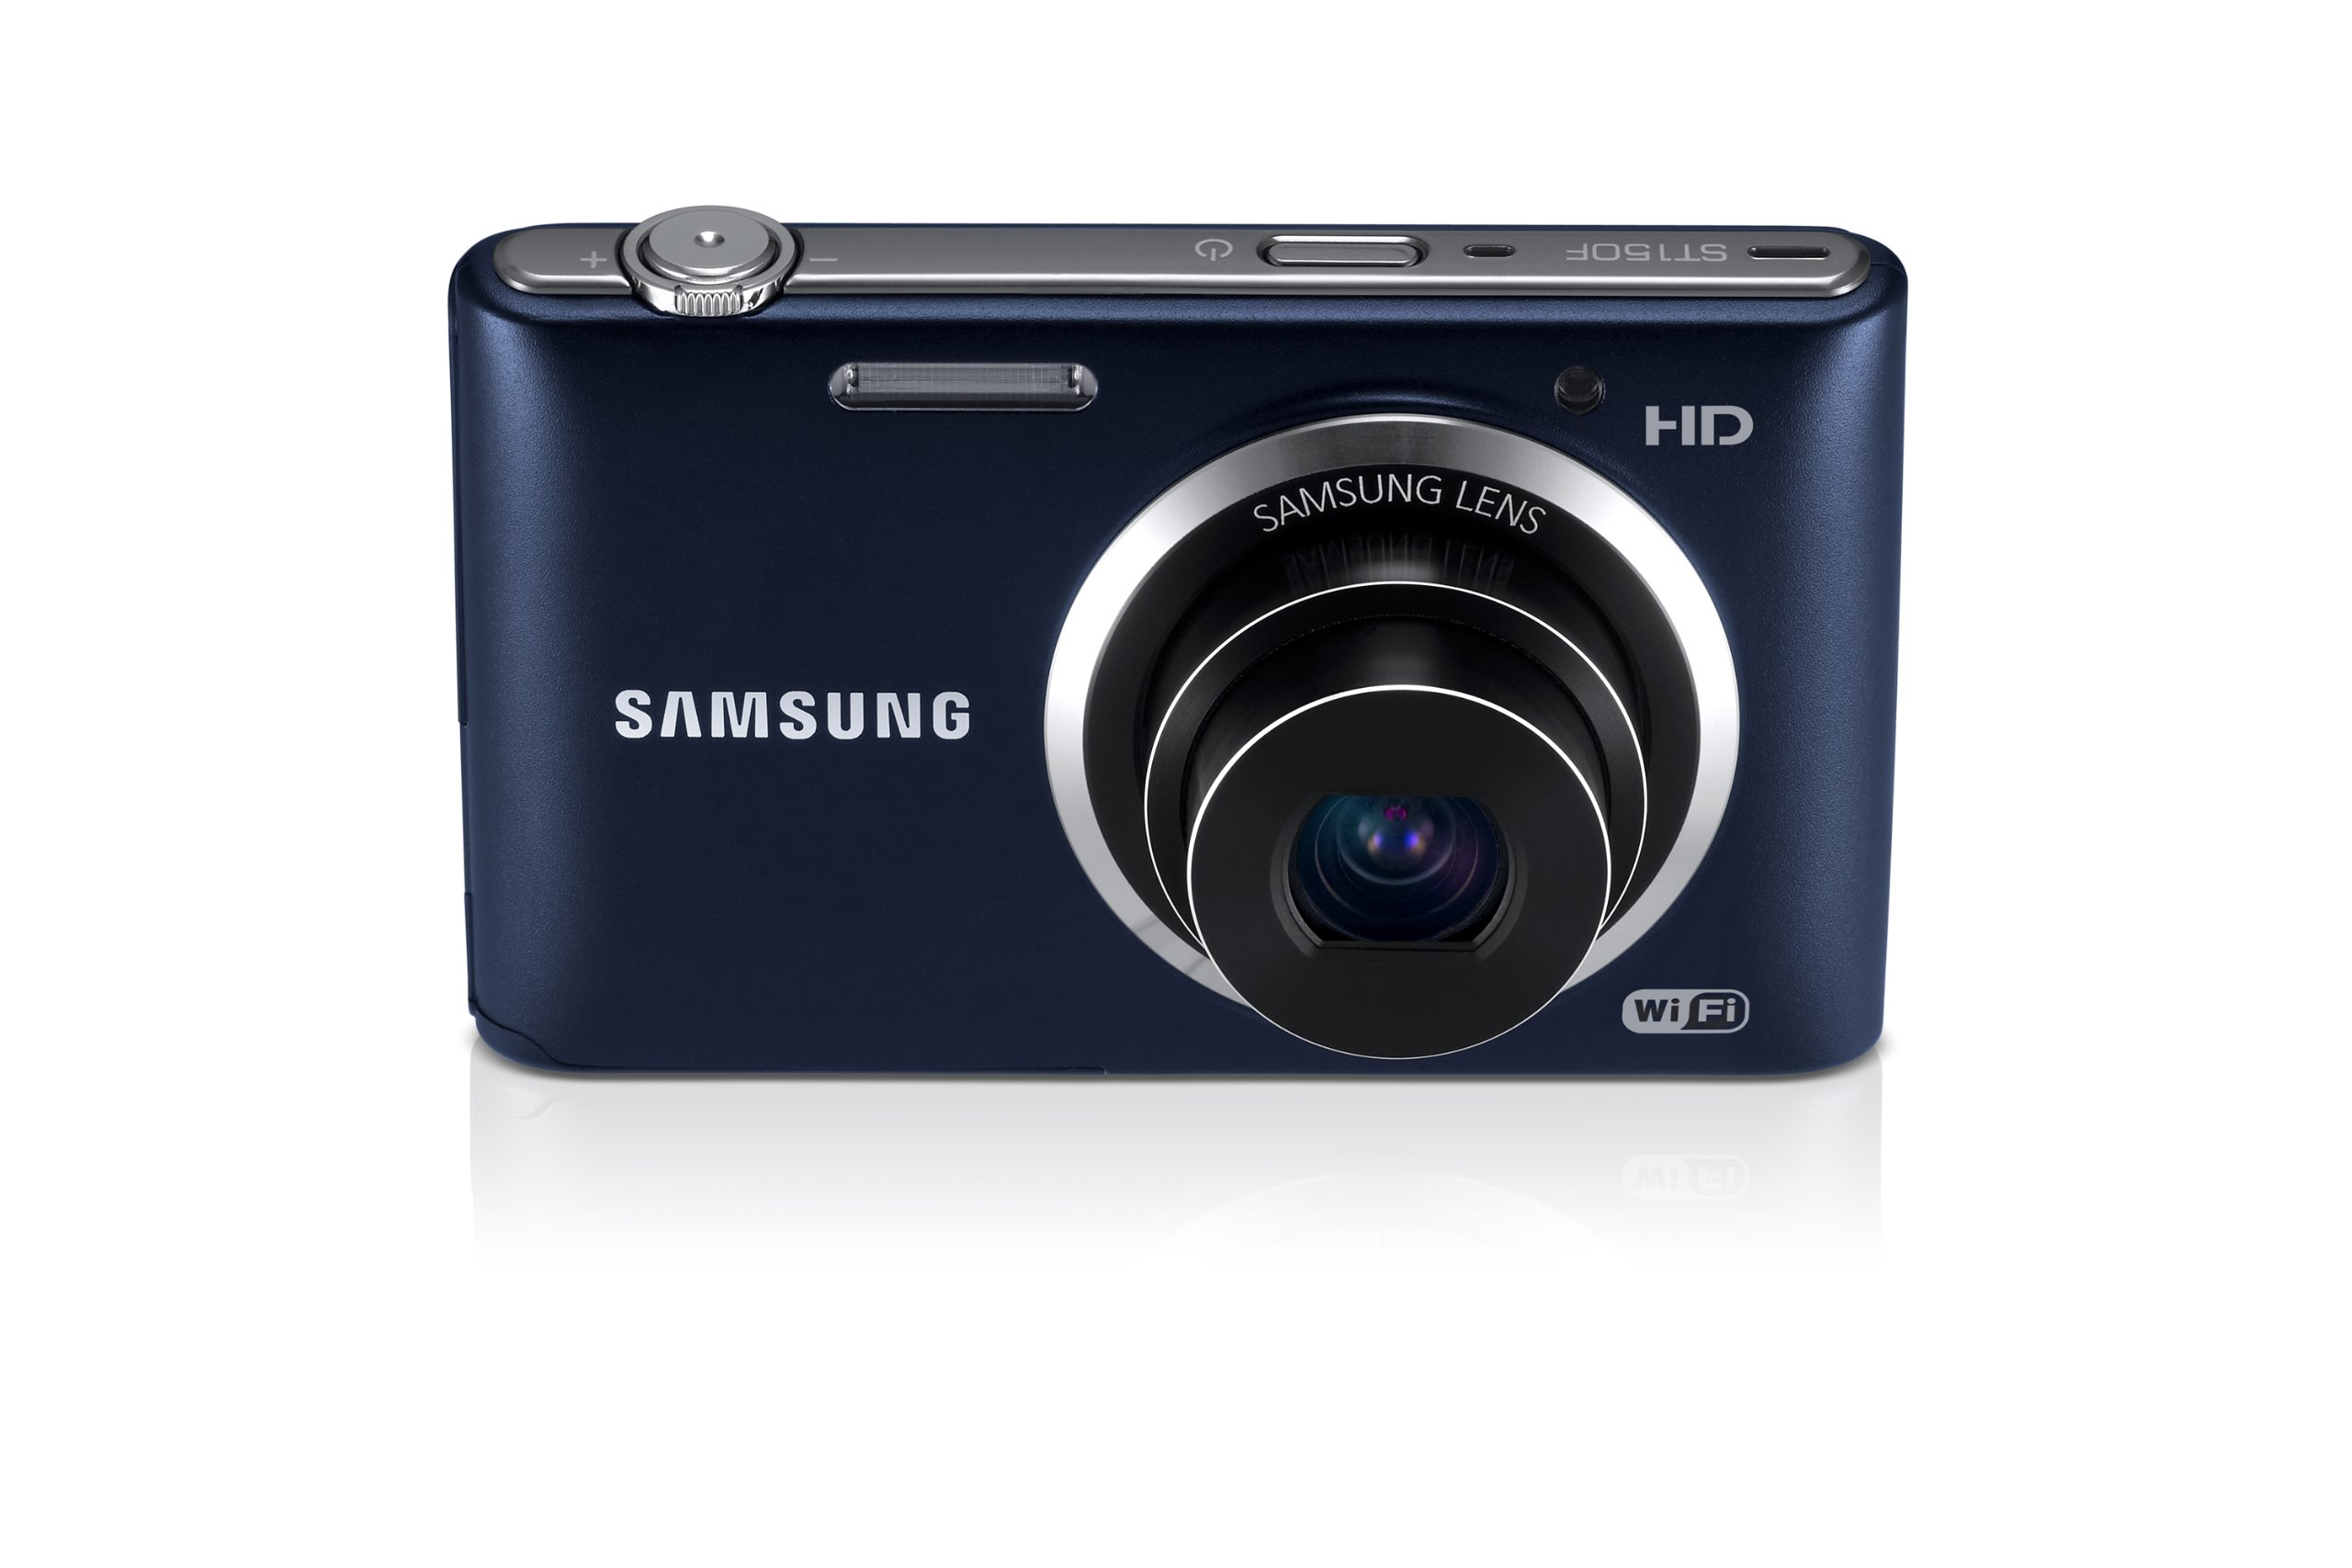 Samsung ST150F 16.2MP Smart WiFi Digital Camera with 5x Optical Zoom and 3.0'' LCD Screen (Black) by Samsung (Image #6)